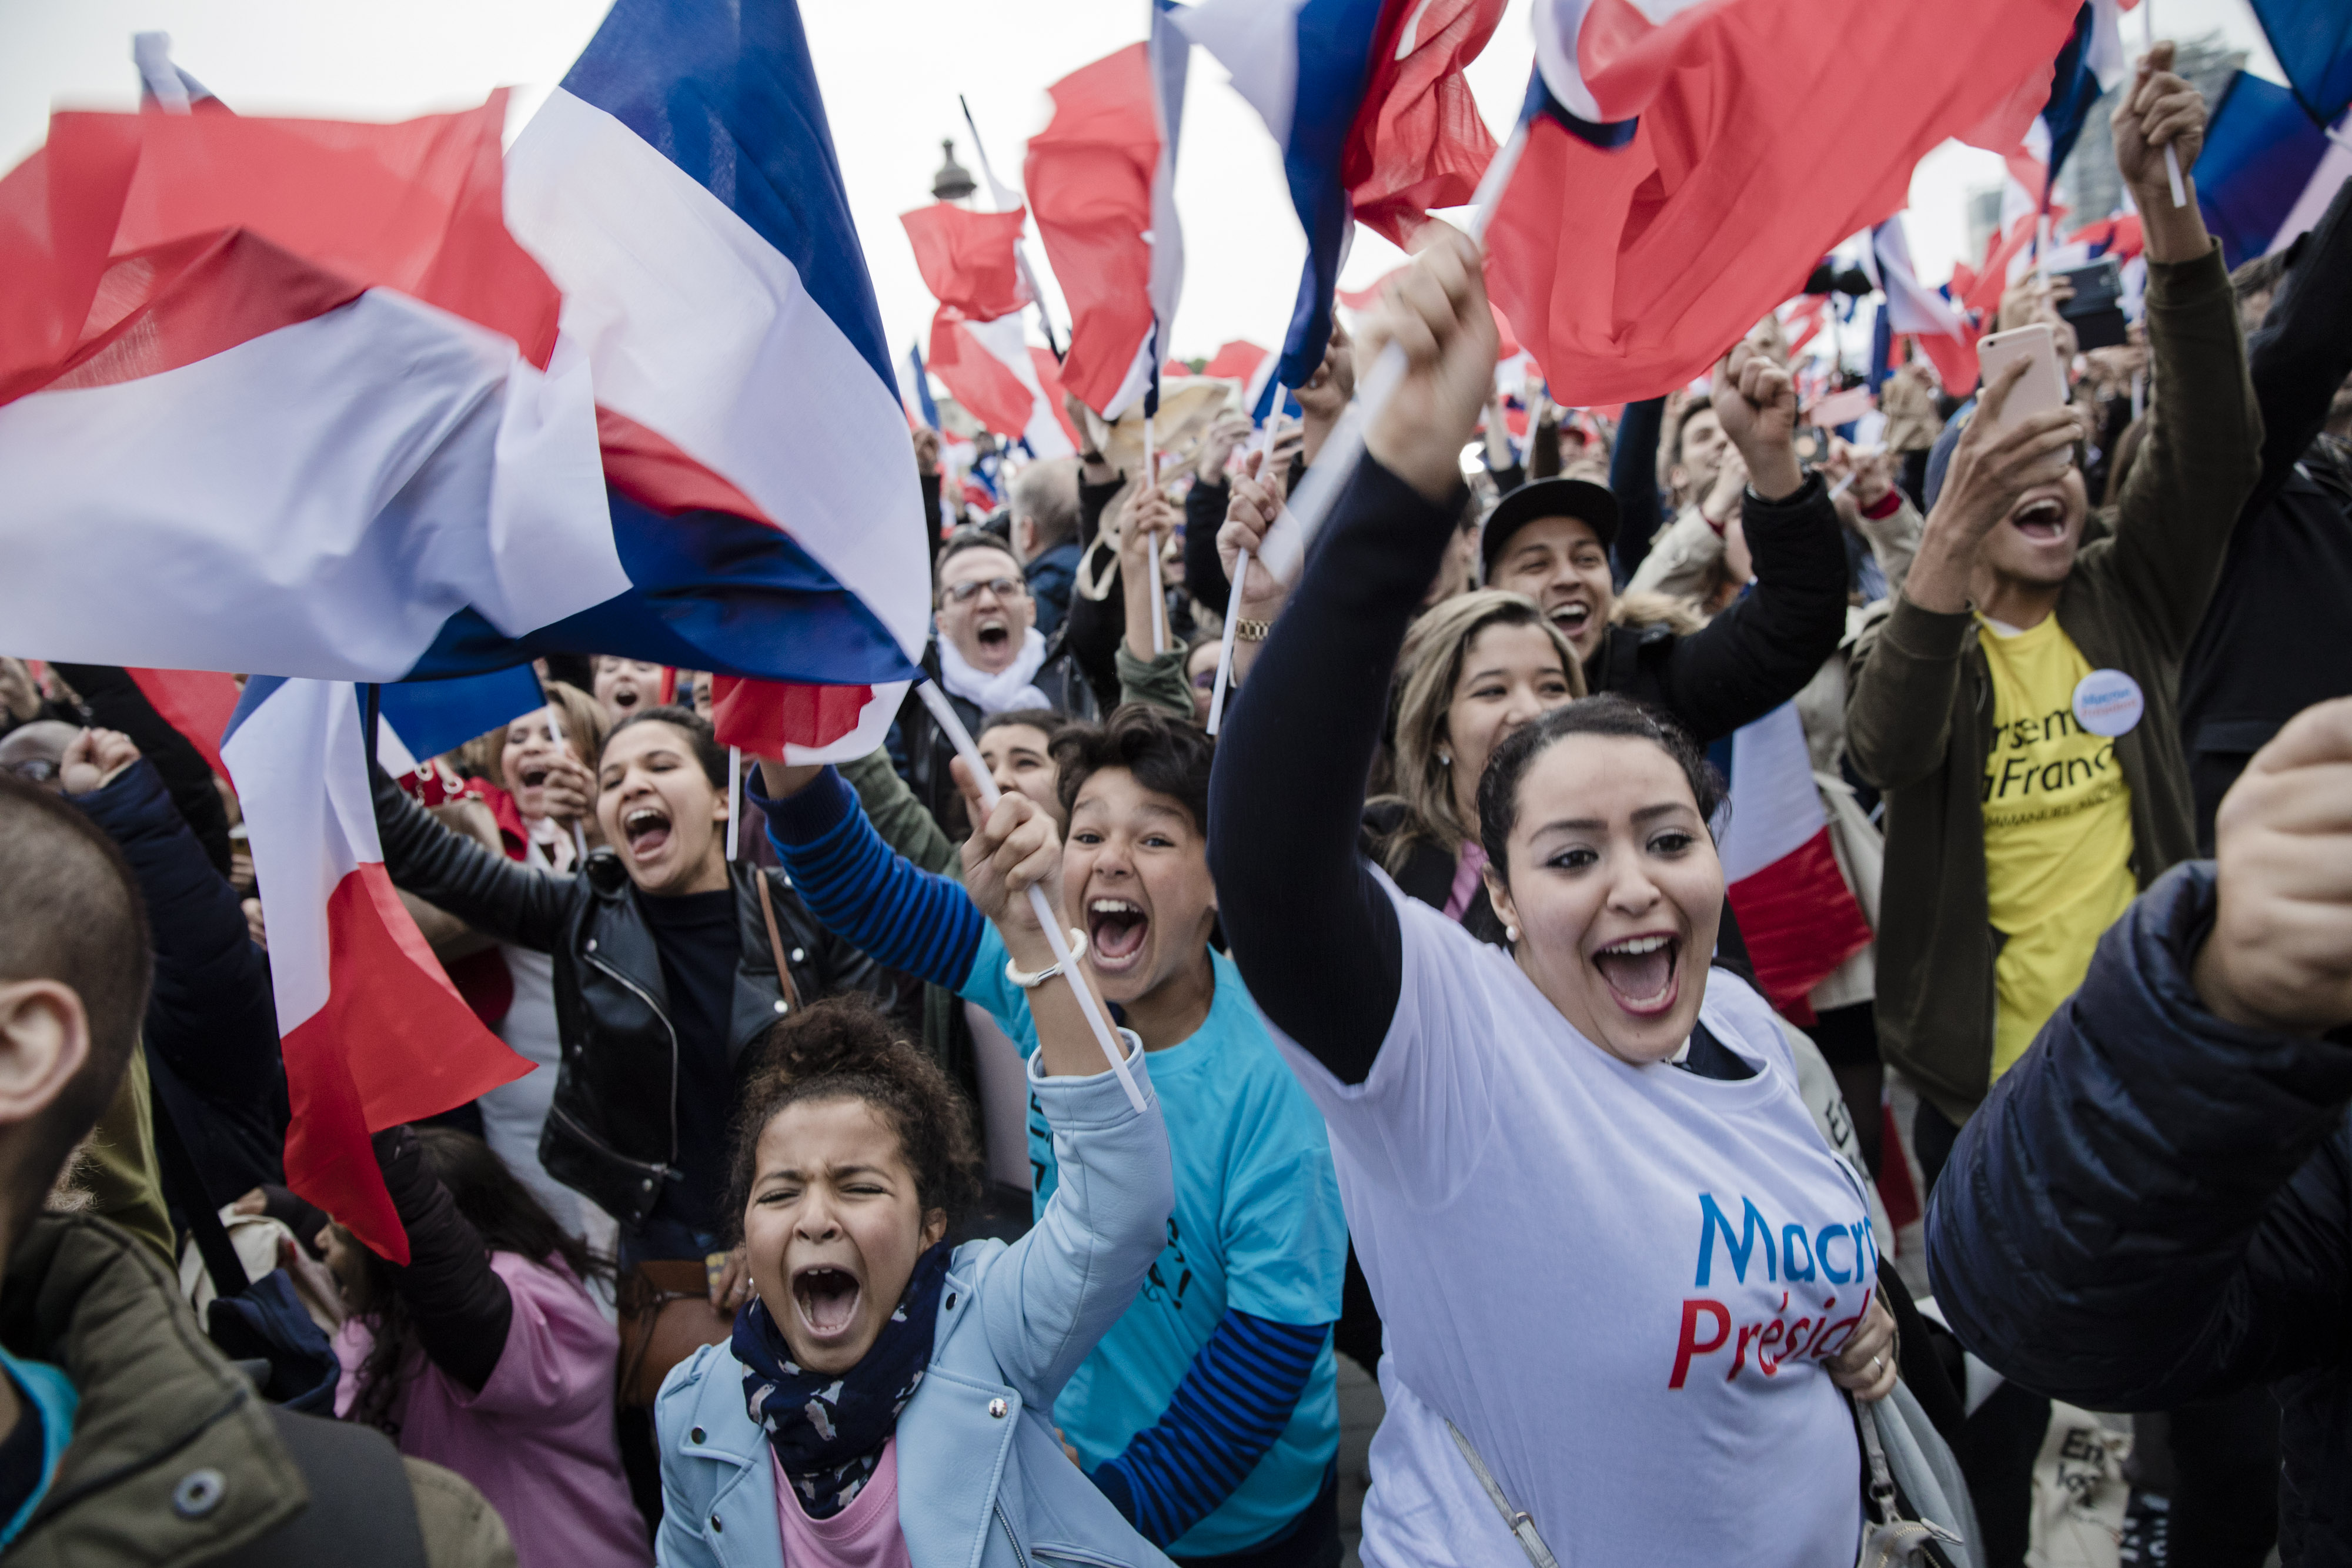 Supporters wave French national flags ahead of a speech by Emmanuel Macron, near the Louvre museum in Paris, on May 7, 2017.